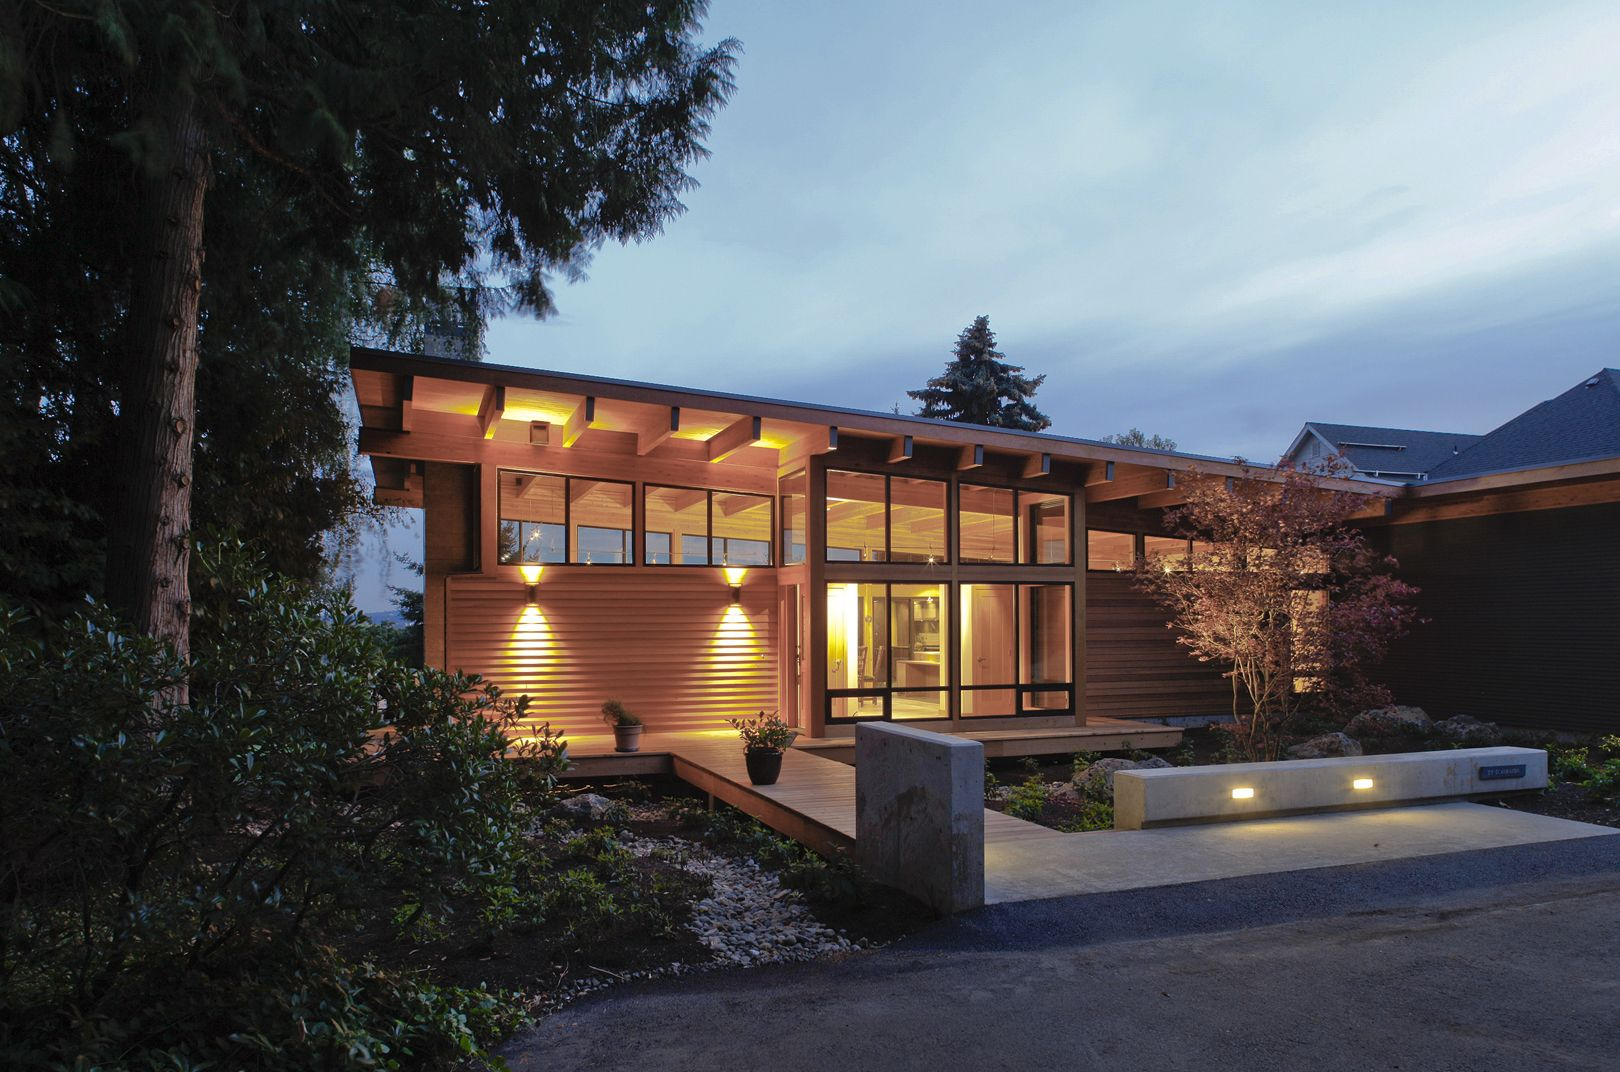 Vancouver airport home pacific northwest modern home for Pacific northwest homes